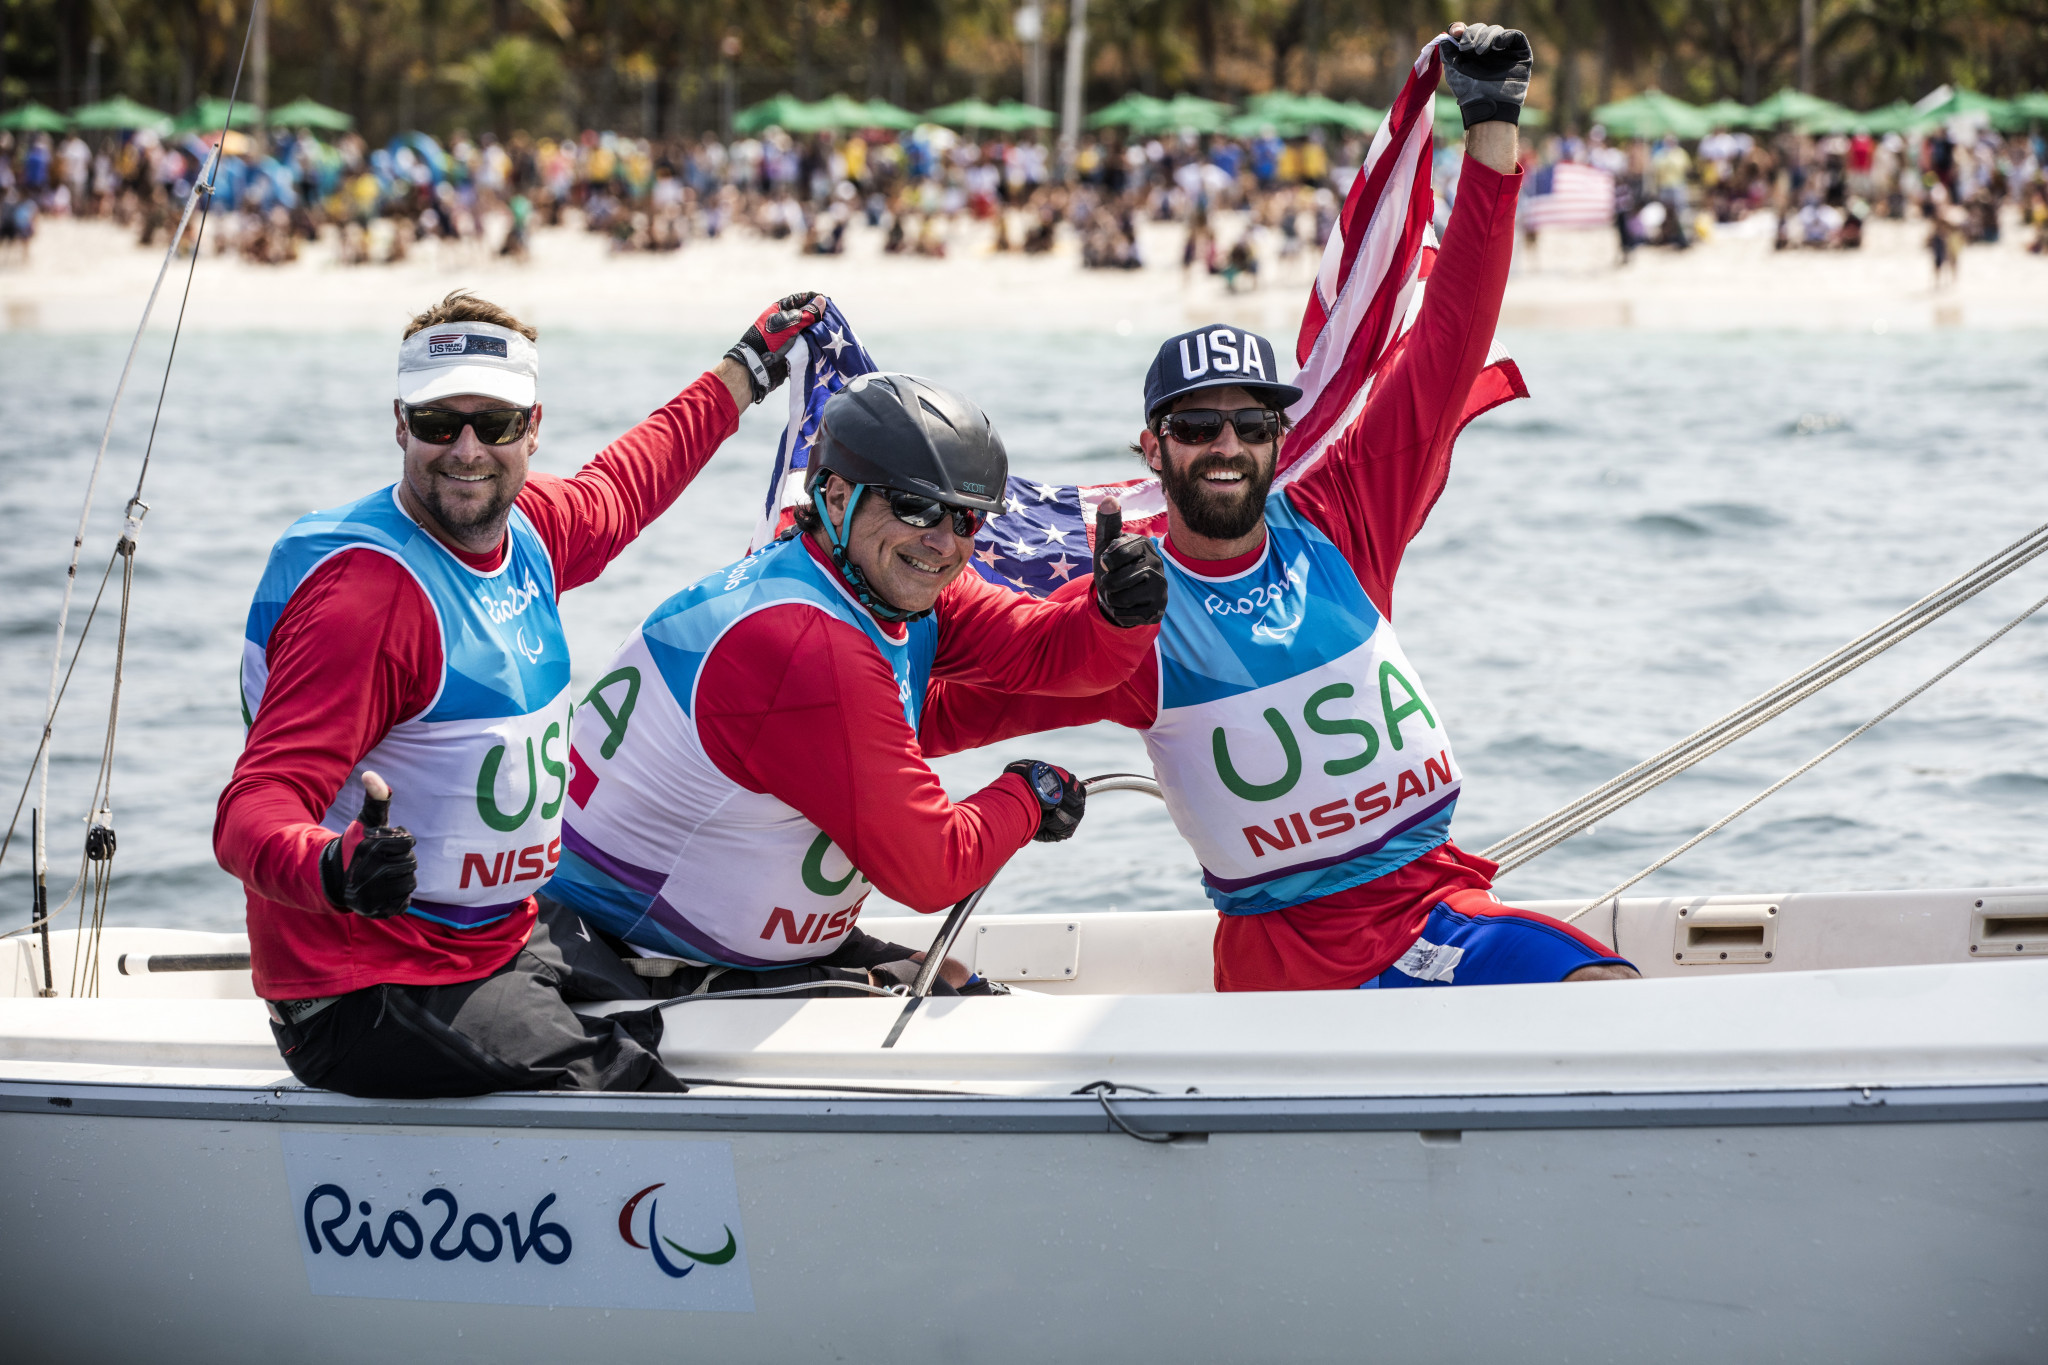 World Sailing sets out strategic plan for Paralympic readmission at Los Angeles 2028